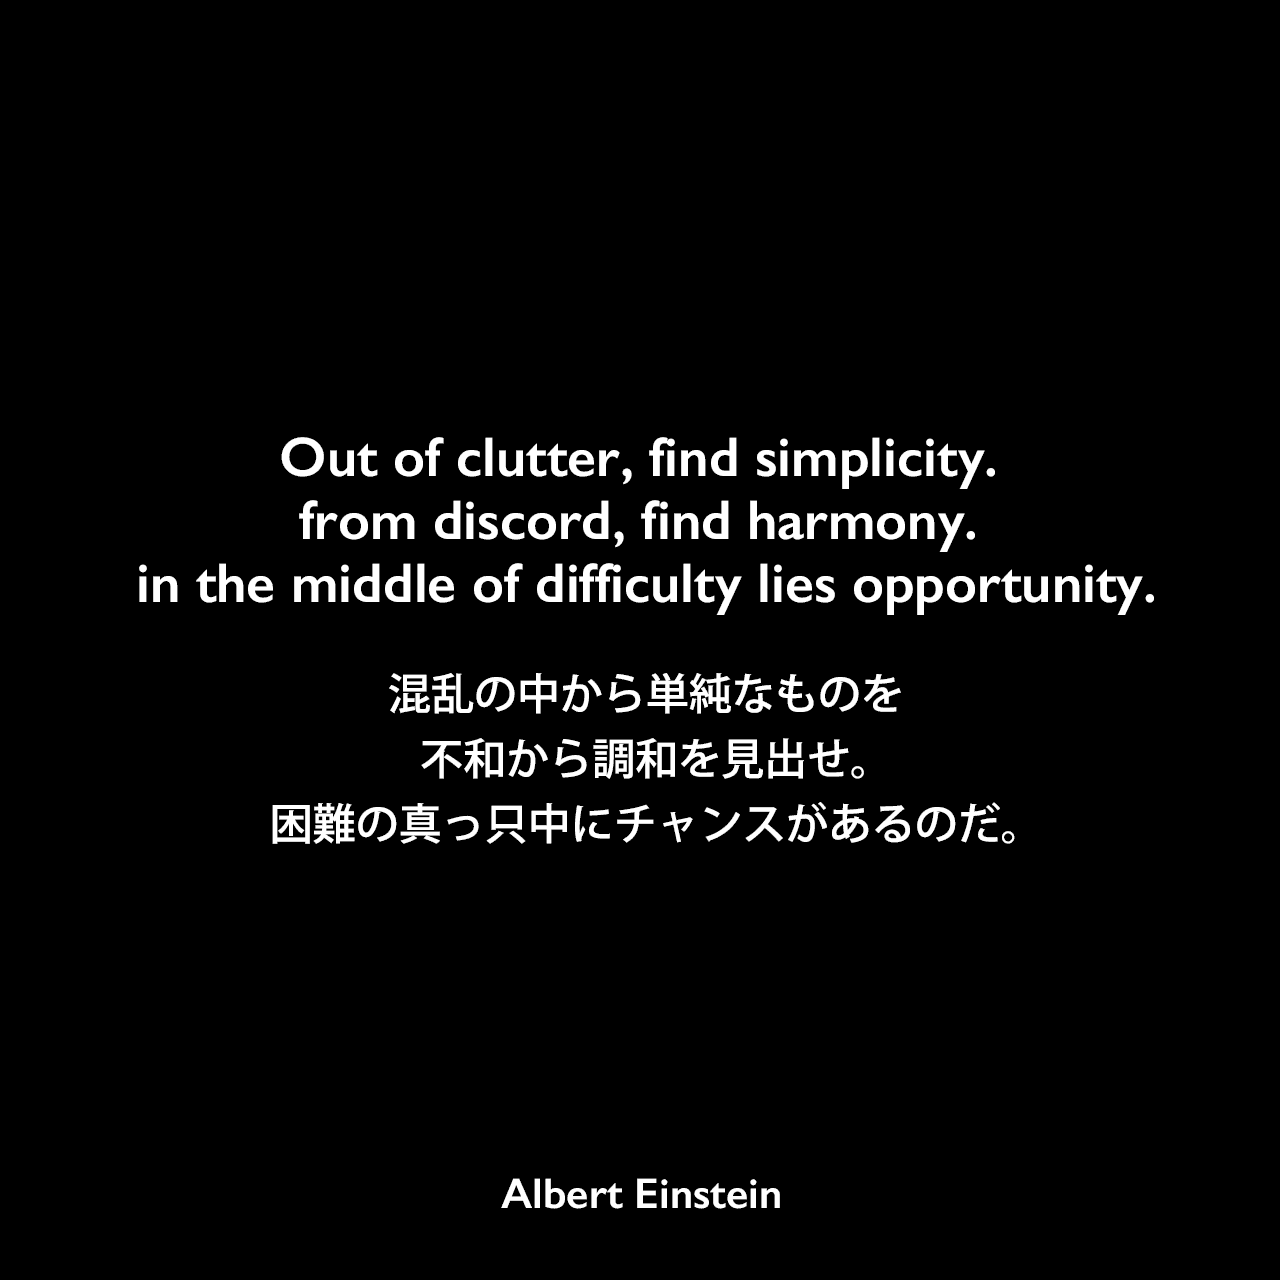 Out of clutter, find simplicity. from discord, find harmony. in the middle of difficulty lies opportunity.混乱の中から単純なものを、不和から調和を見出せ。困難の真っ只中にチャンスがあるのだ。- 物理学者ジョン・ホイーラーとのインタビュー(1979年)よりAlbert Einstein